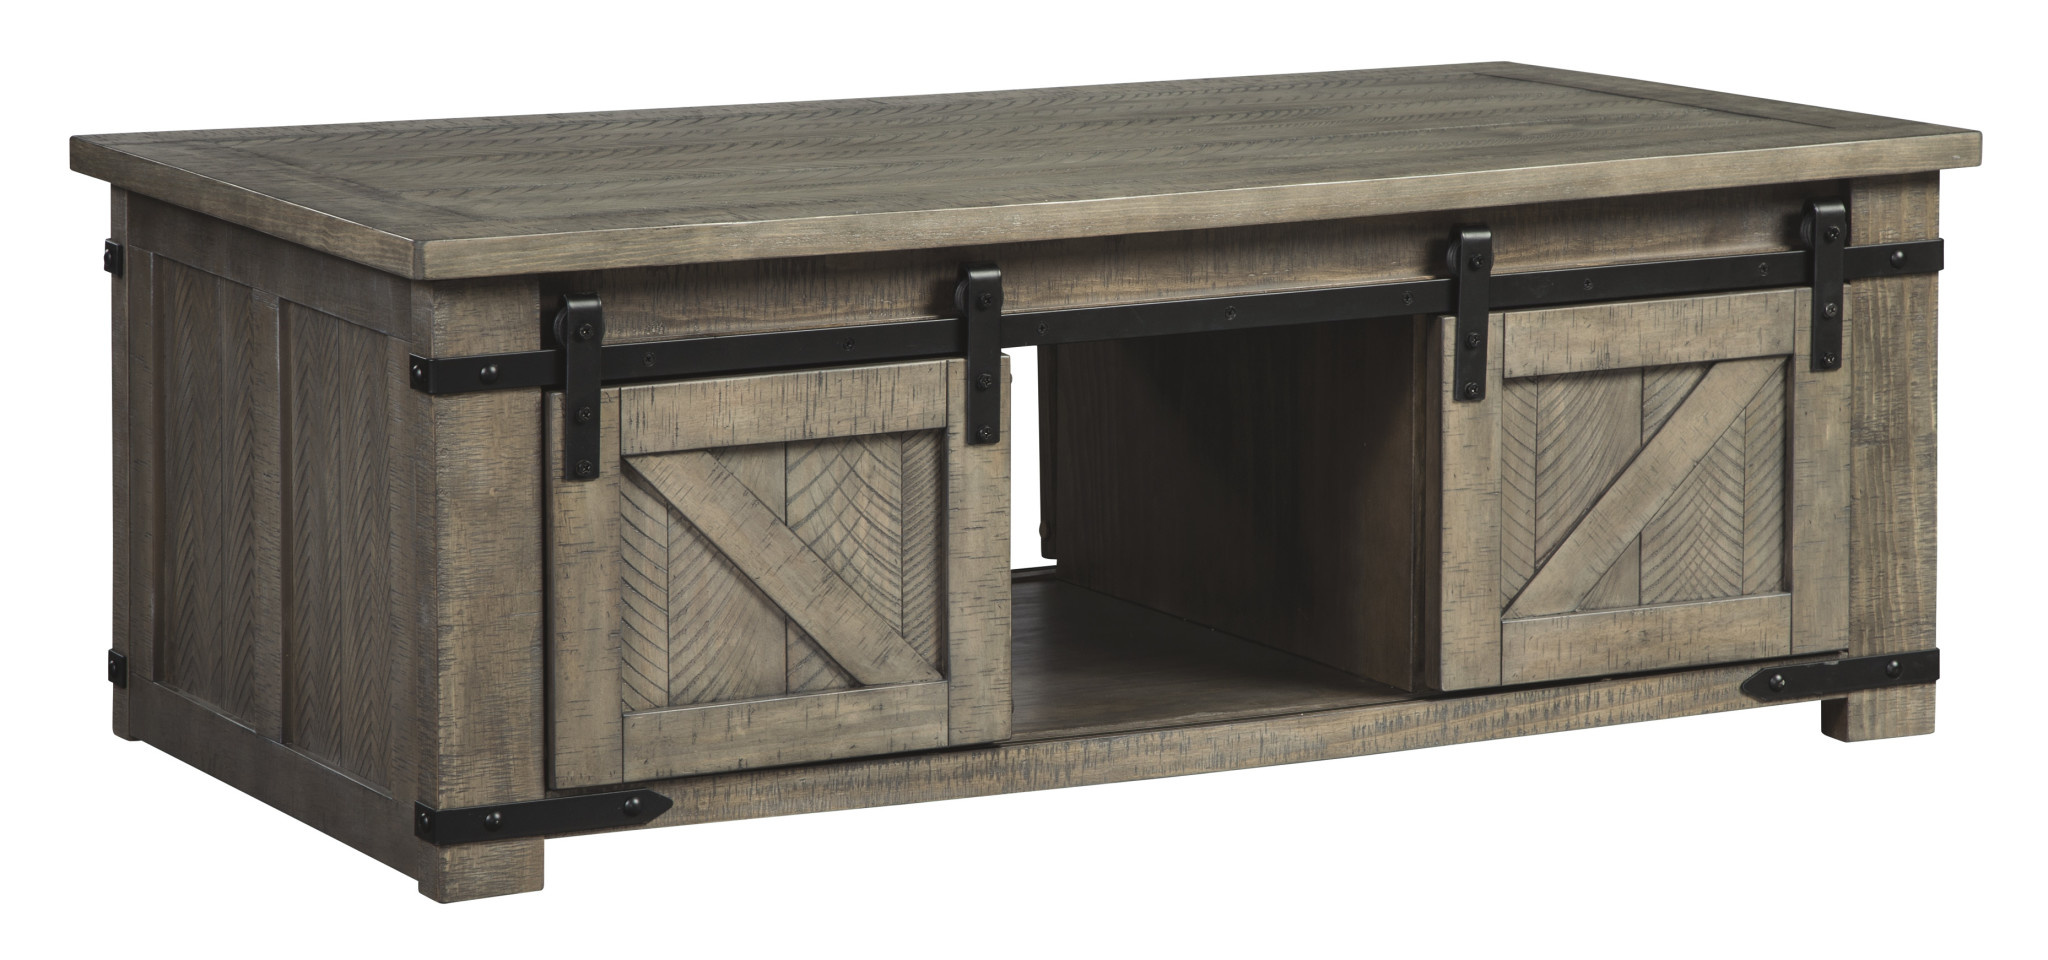 Signature Design Rectangular Storage Cocktail Table Aldwin- Gray T837-1